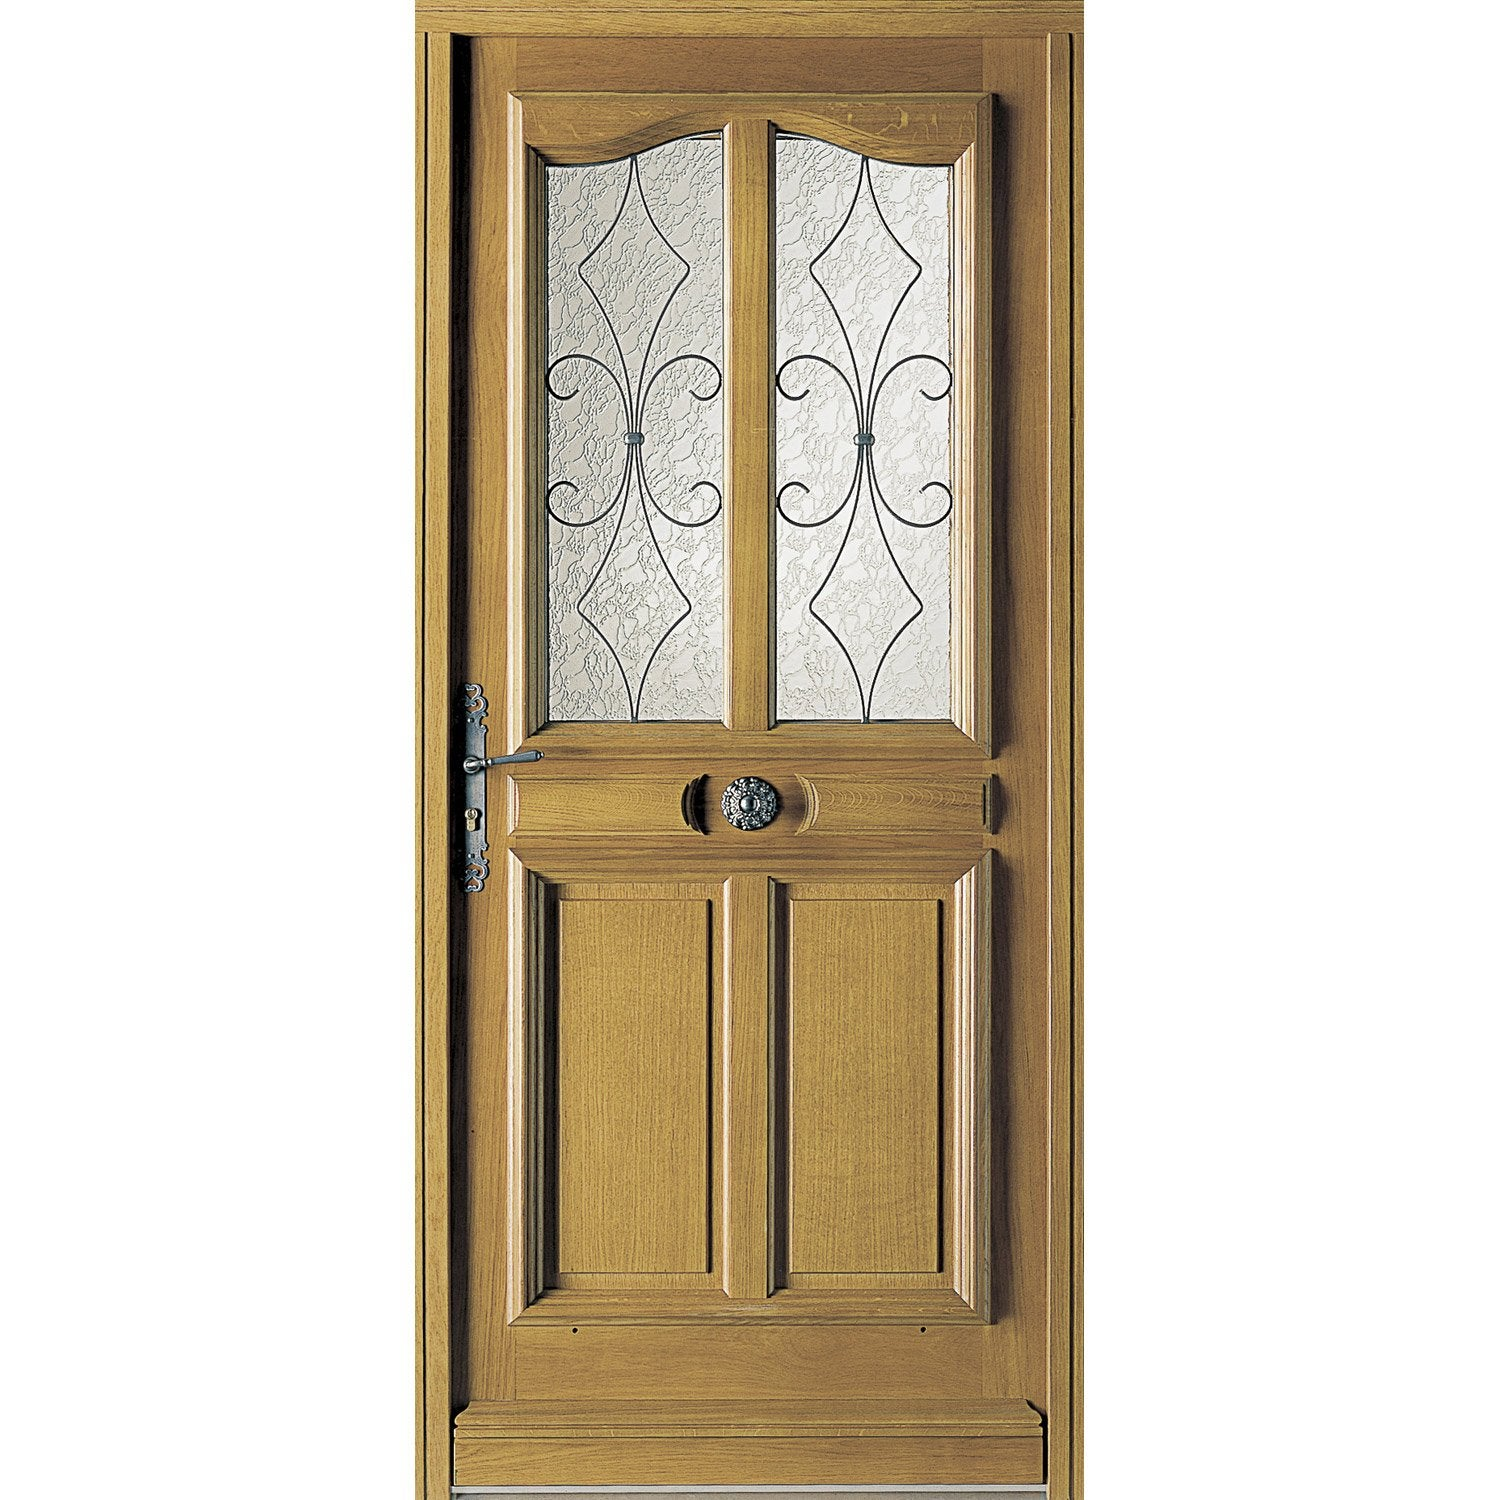 Porte d 39 entr e sur mesure en bois courchevel excellence leroy merlin - Porte renovation leroy merlin ...